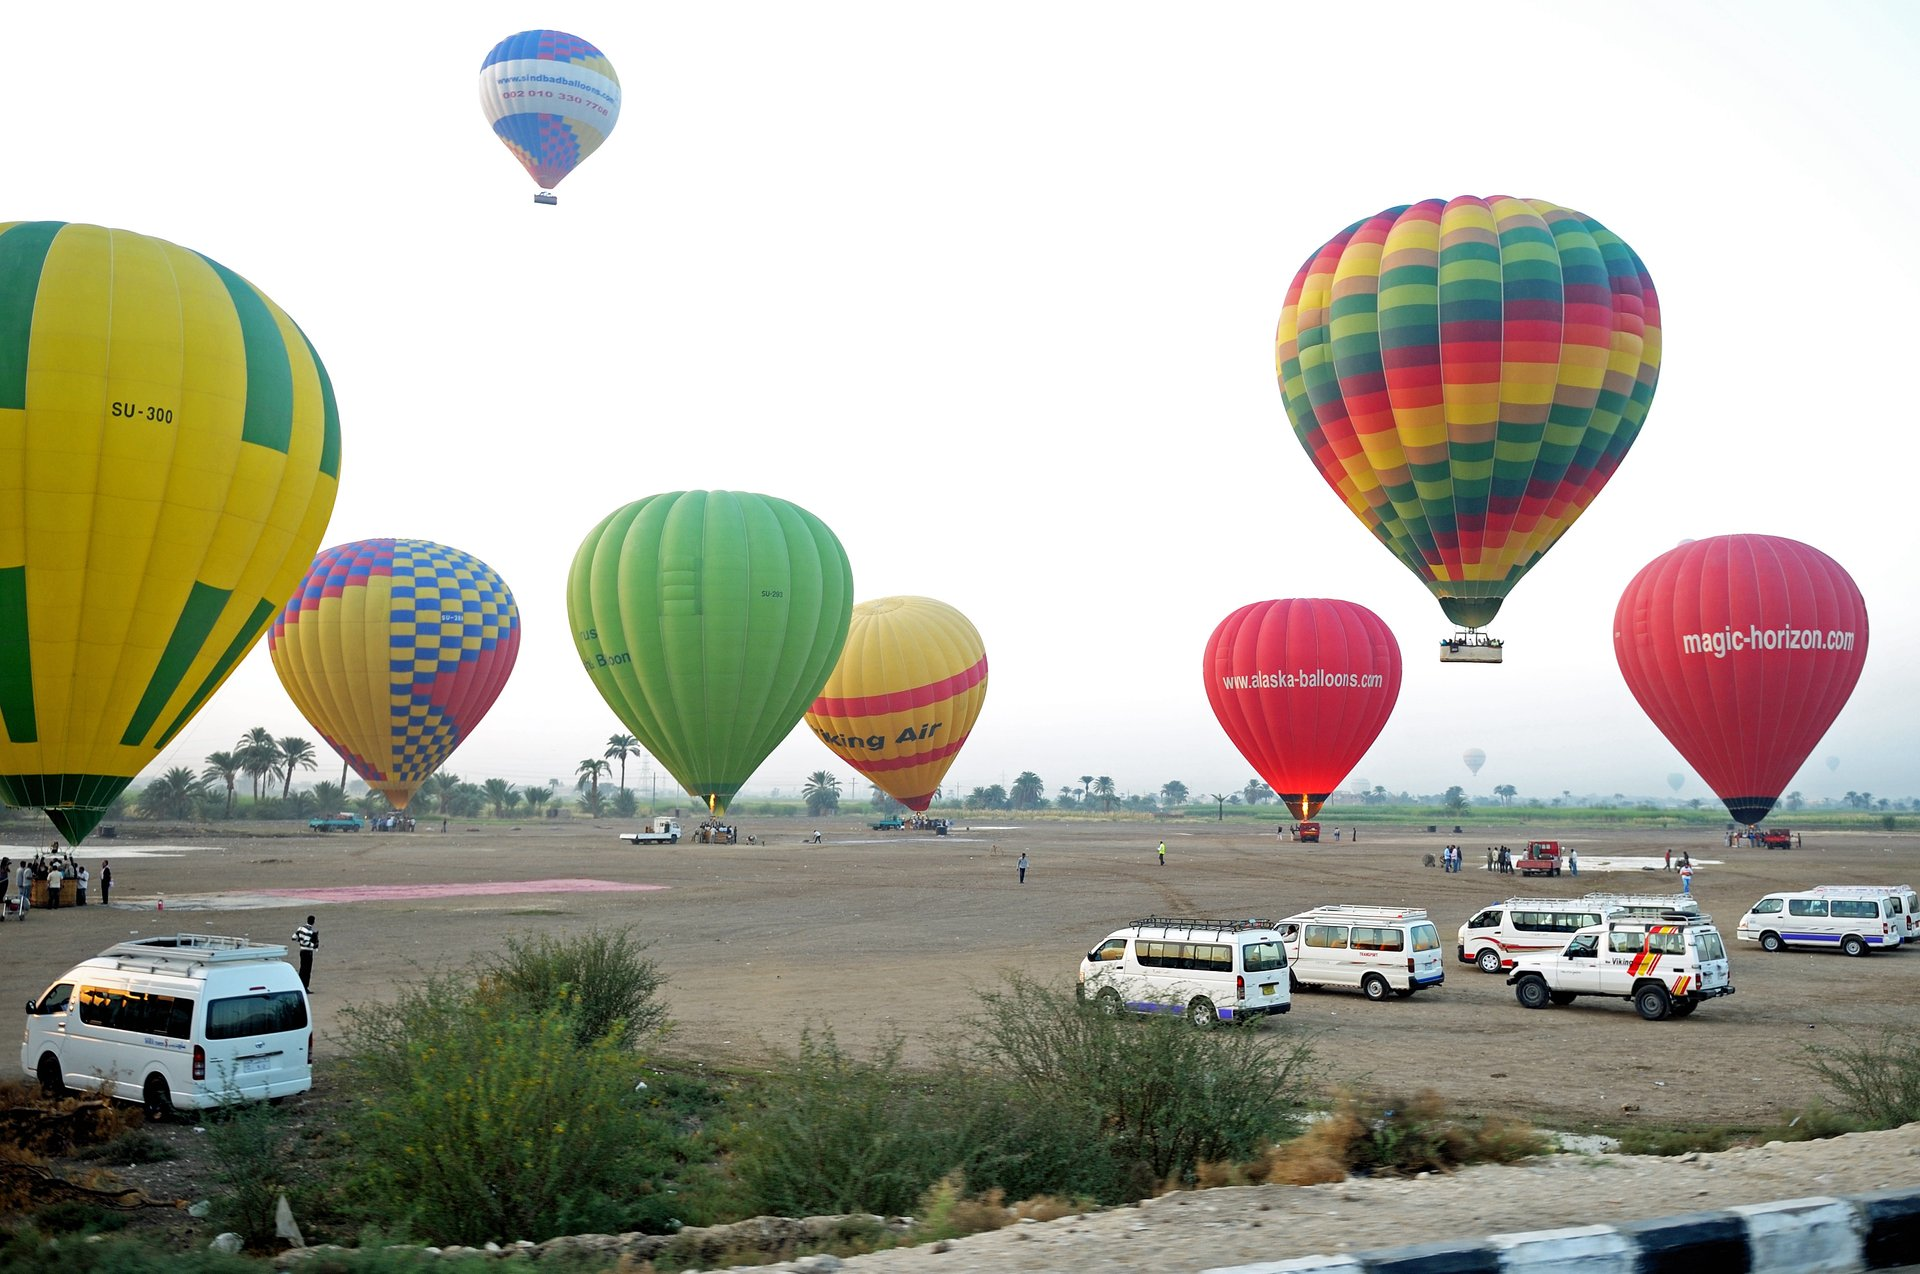 Luxor Egypt Balloon Ride 2020